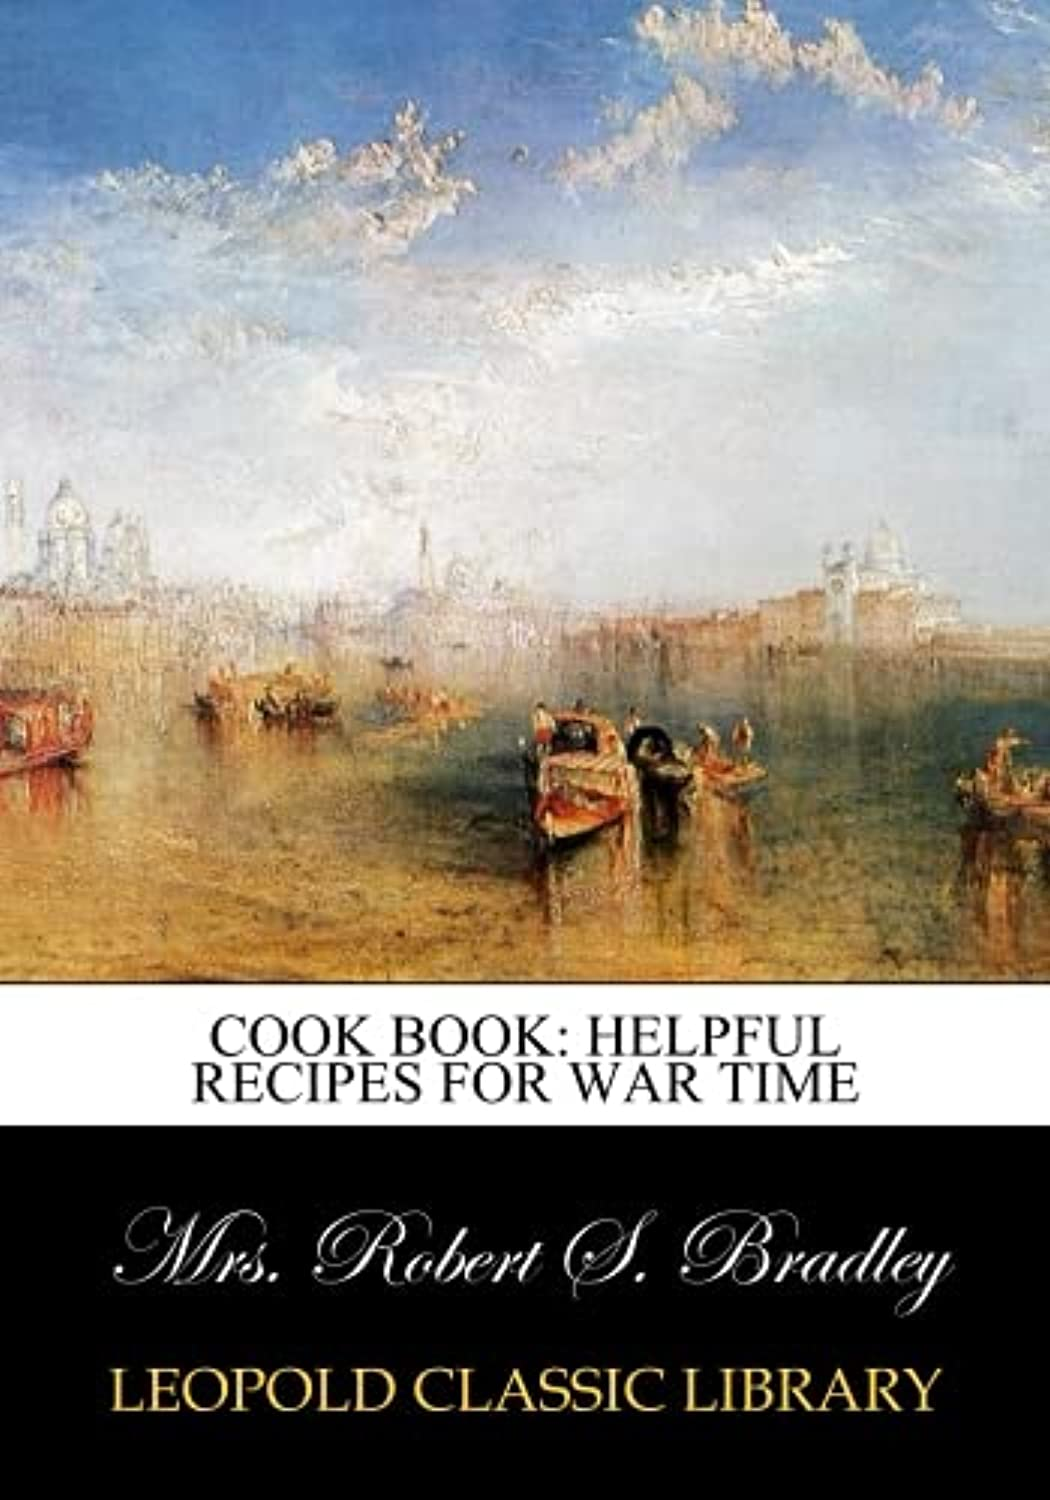 Cook Book: Helpful Recipes for War Time